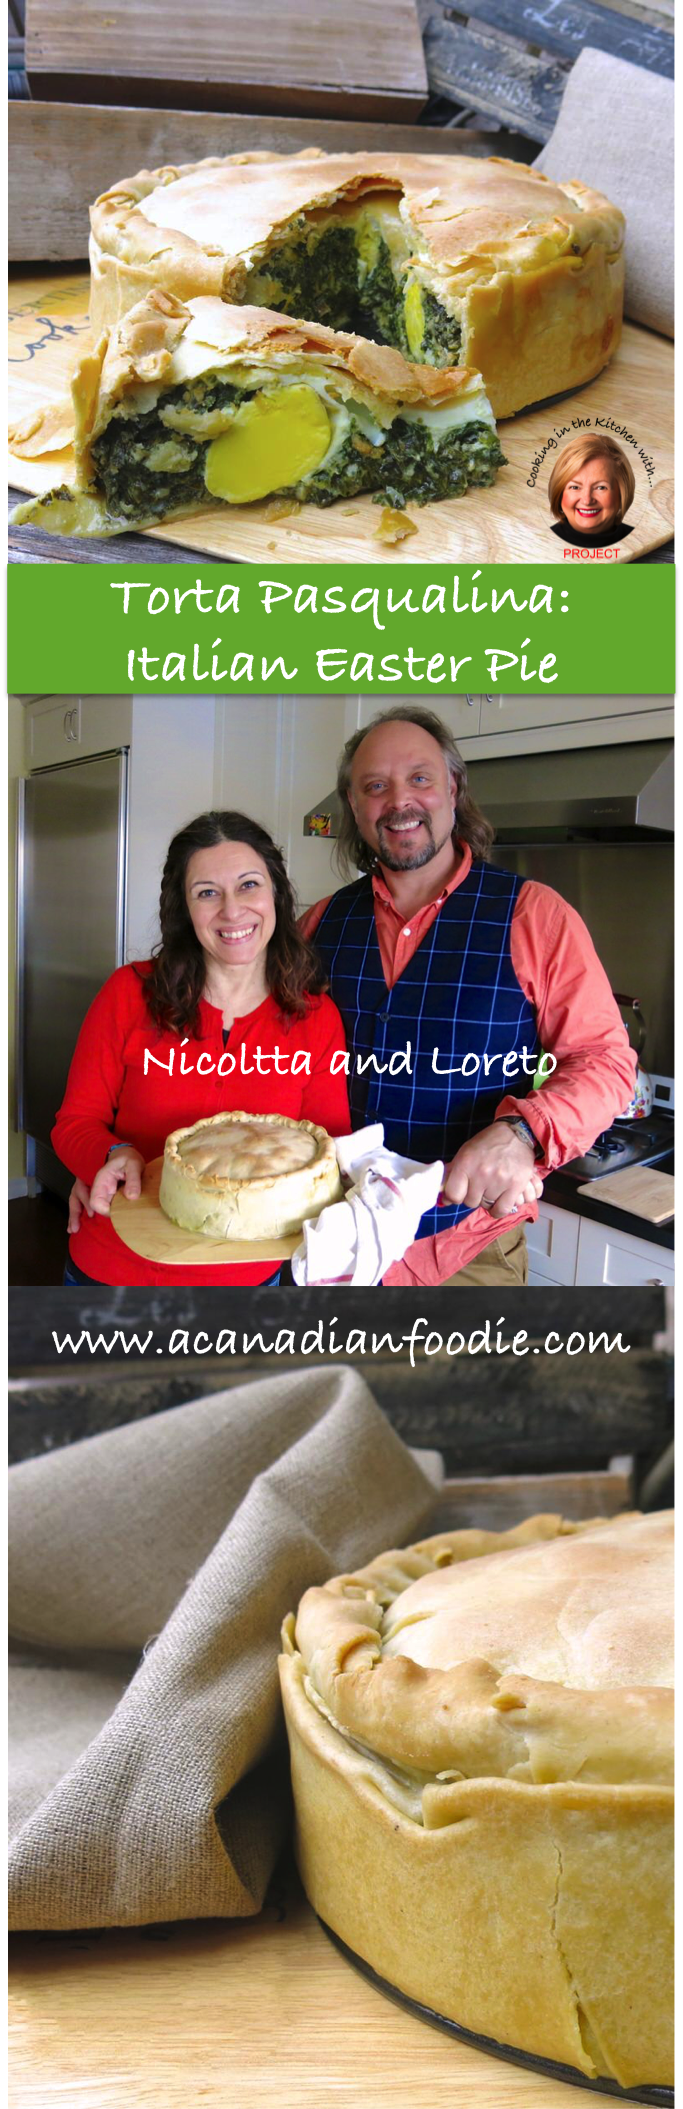 Torta Pasqualina: Traditional Italian Savory Easter Vegetarian Pie #ACFValerieCookingWithYOU! with Nicoletta and Loretto at SugarLoveSpices Step-by-Step Images. Celebrate Spring! www.acanadianfoodie.com